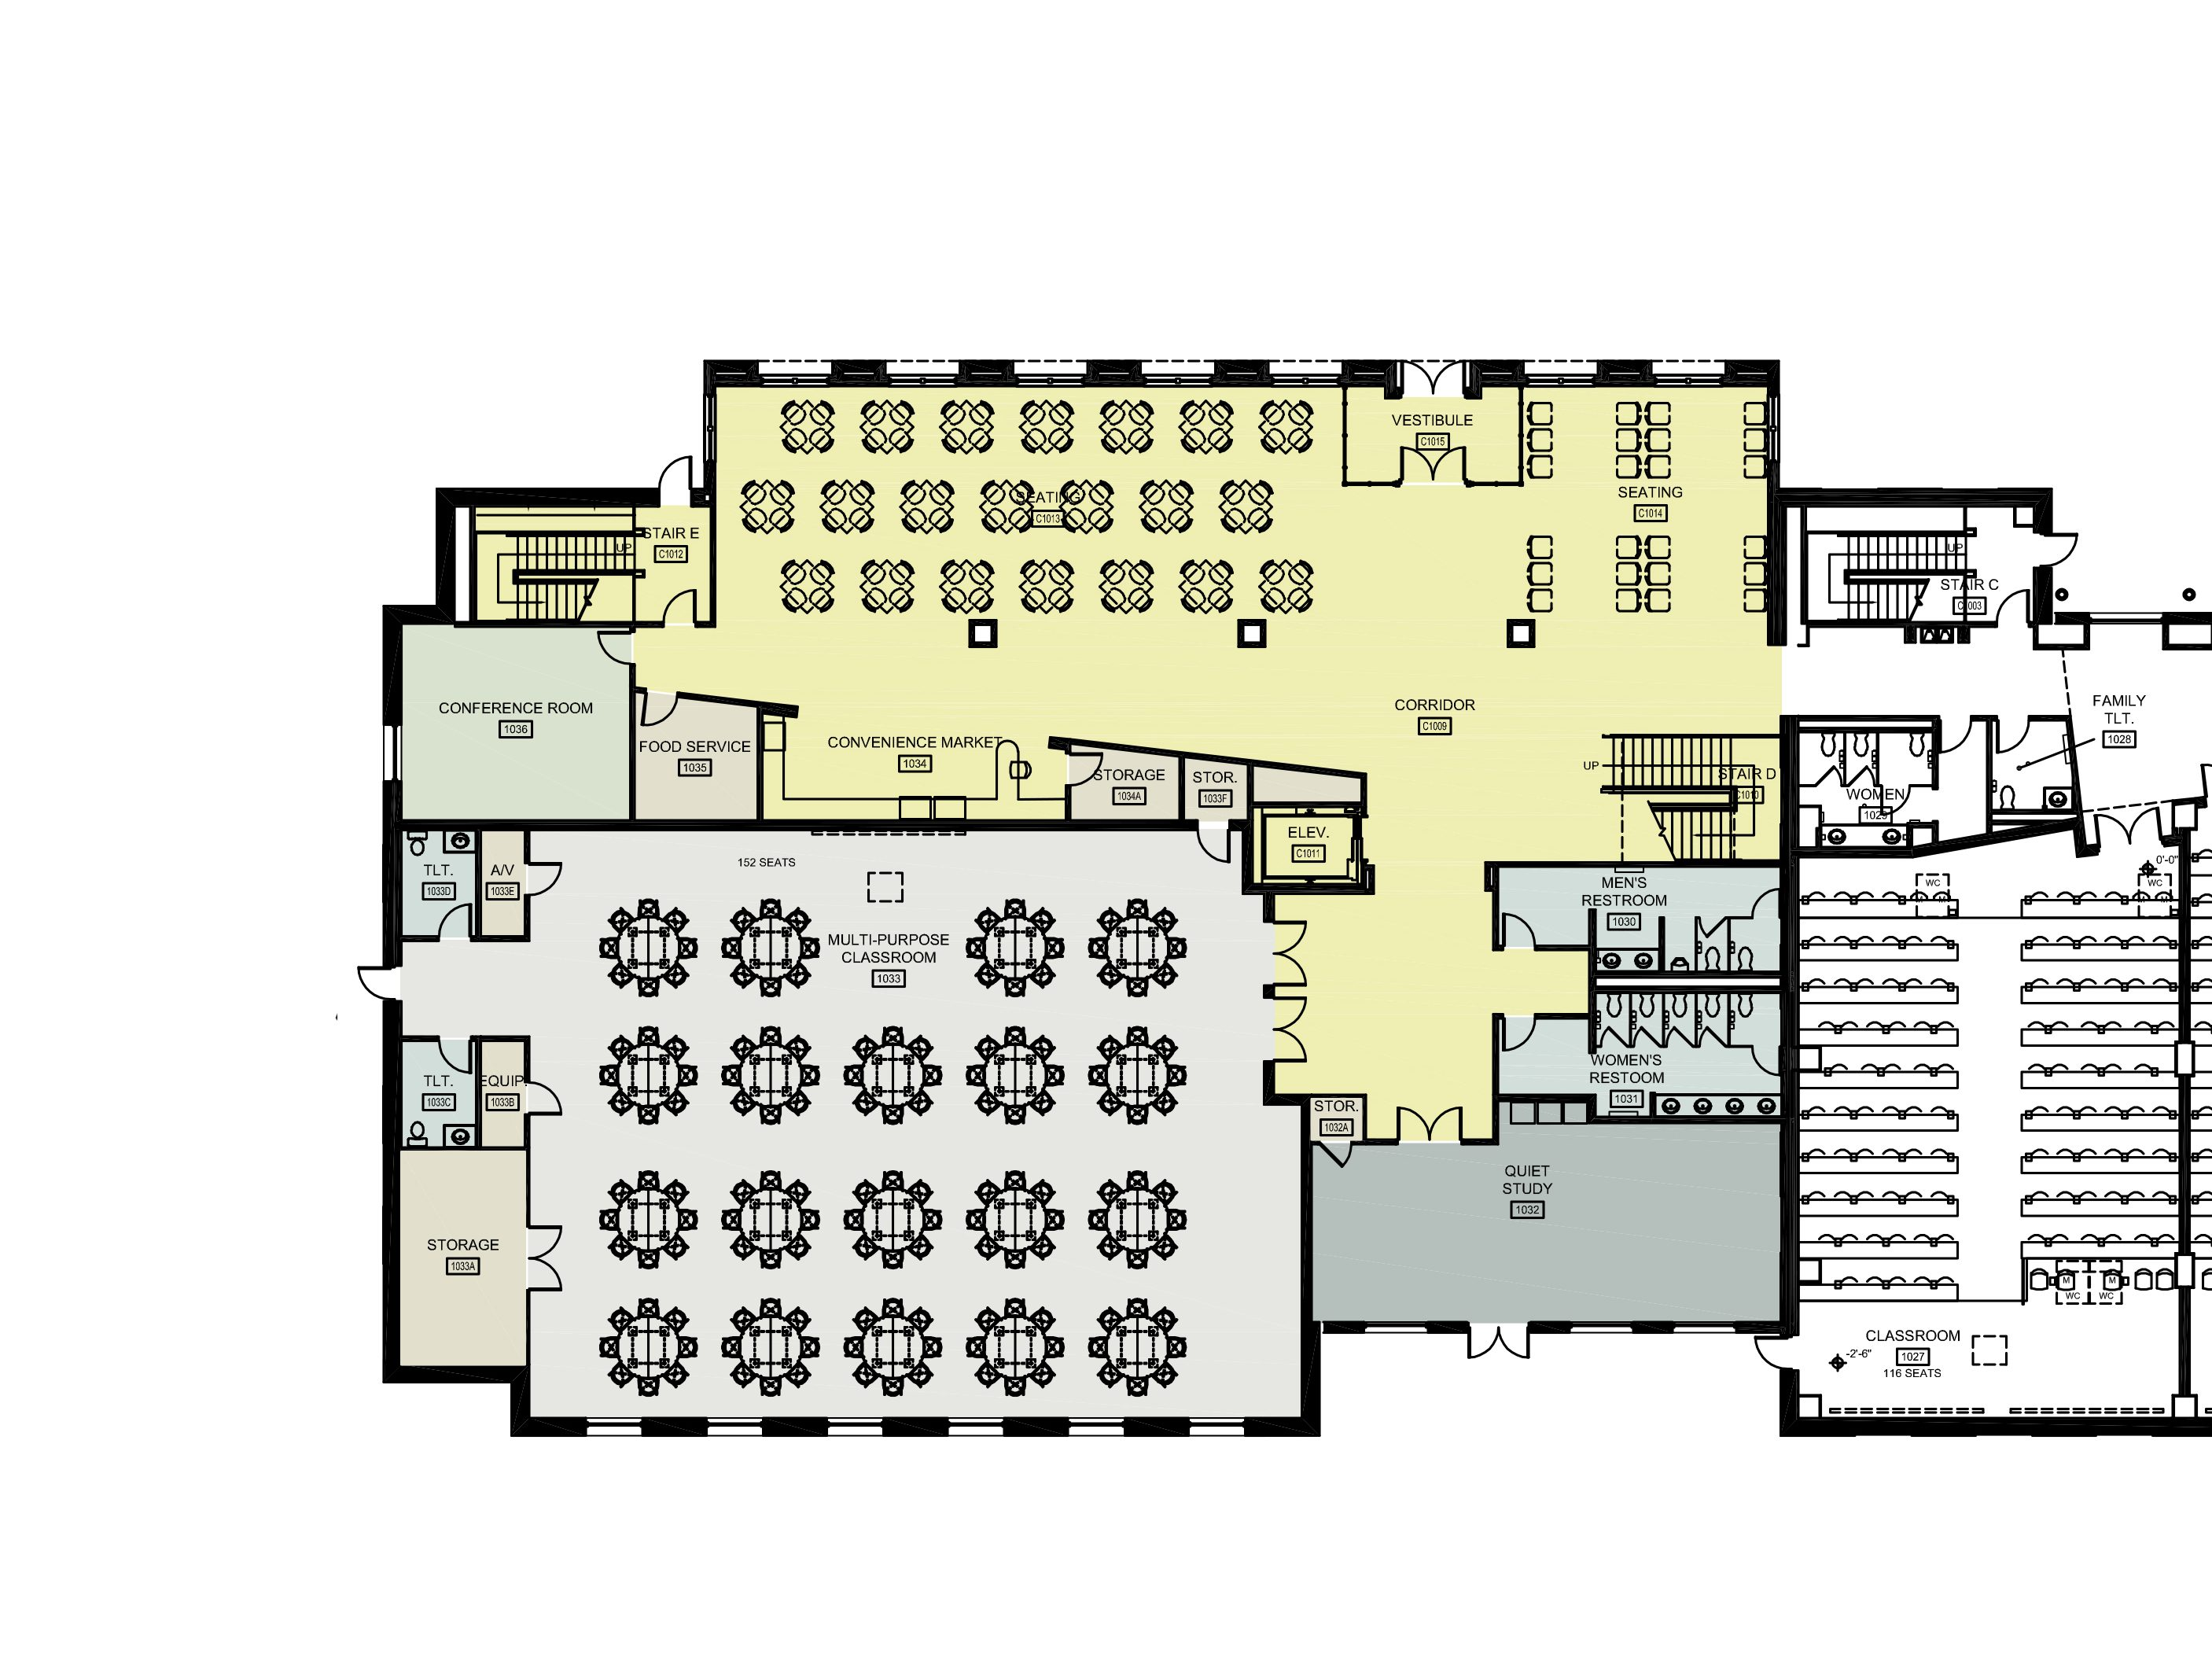 Link leads to large image version of first level Floor Plan. Phone: 205.348.9876 or email: ahamlett@ua.edu for further information.